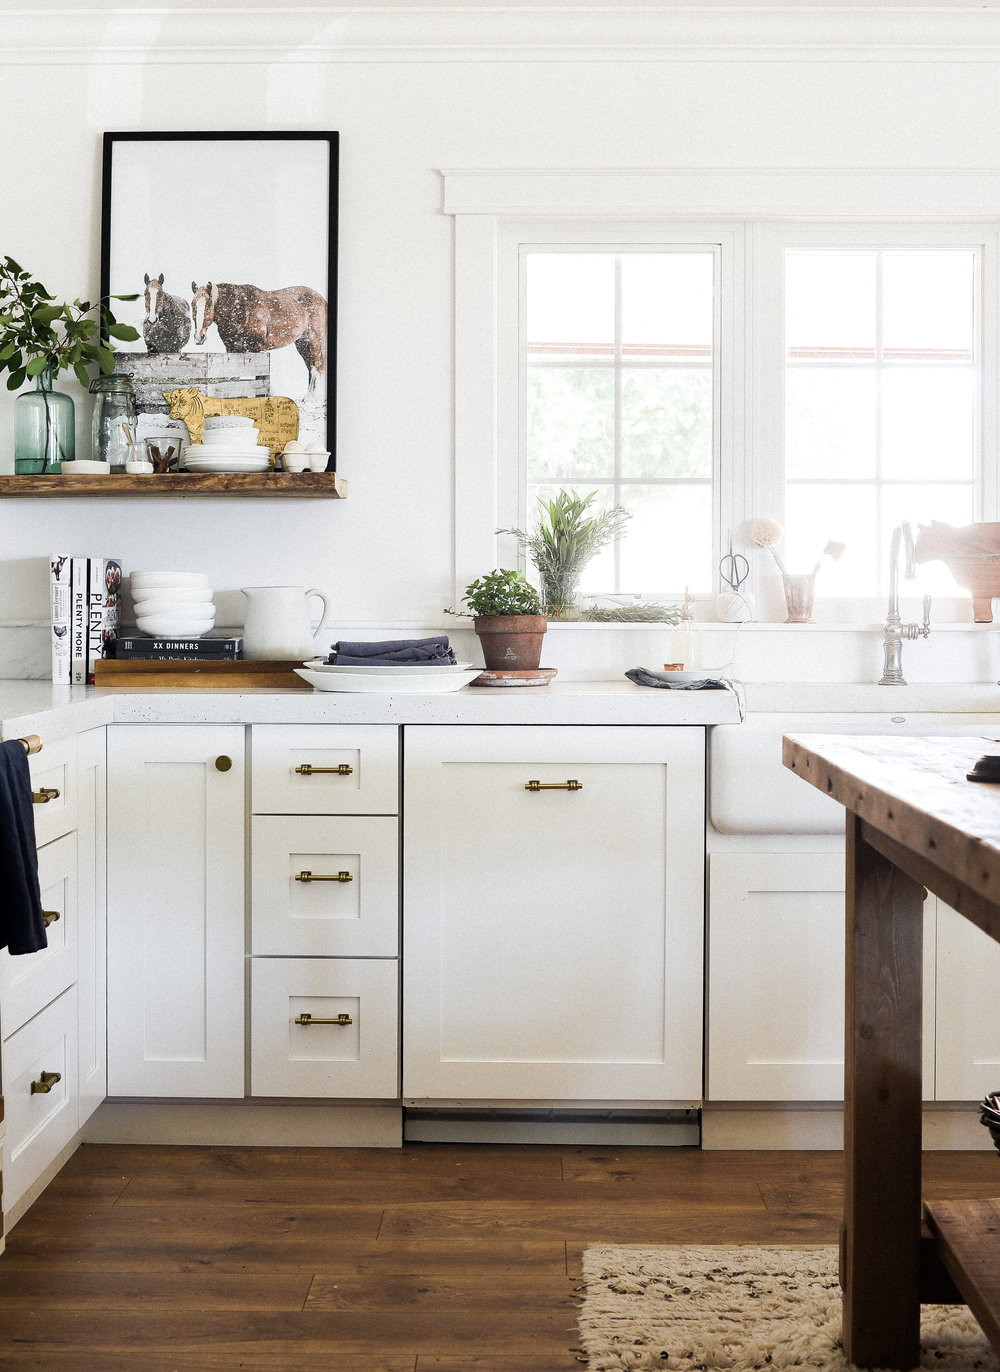 White modern farmhouse kitchen remodel with wood island | boxwoodavenue.com